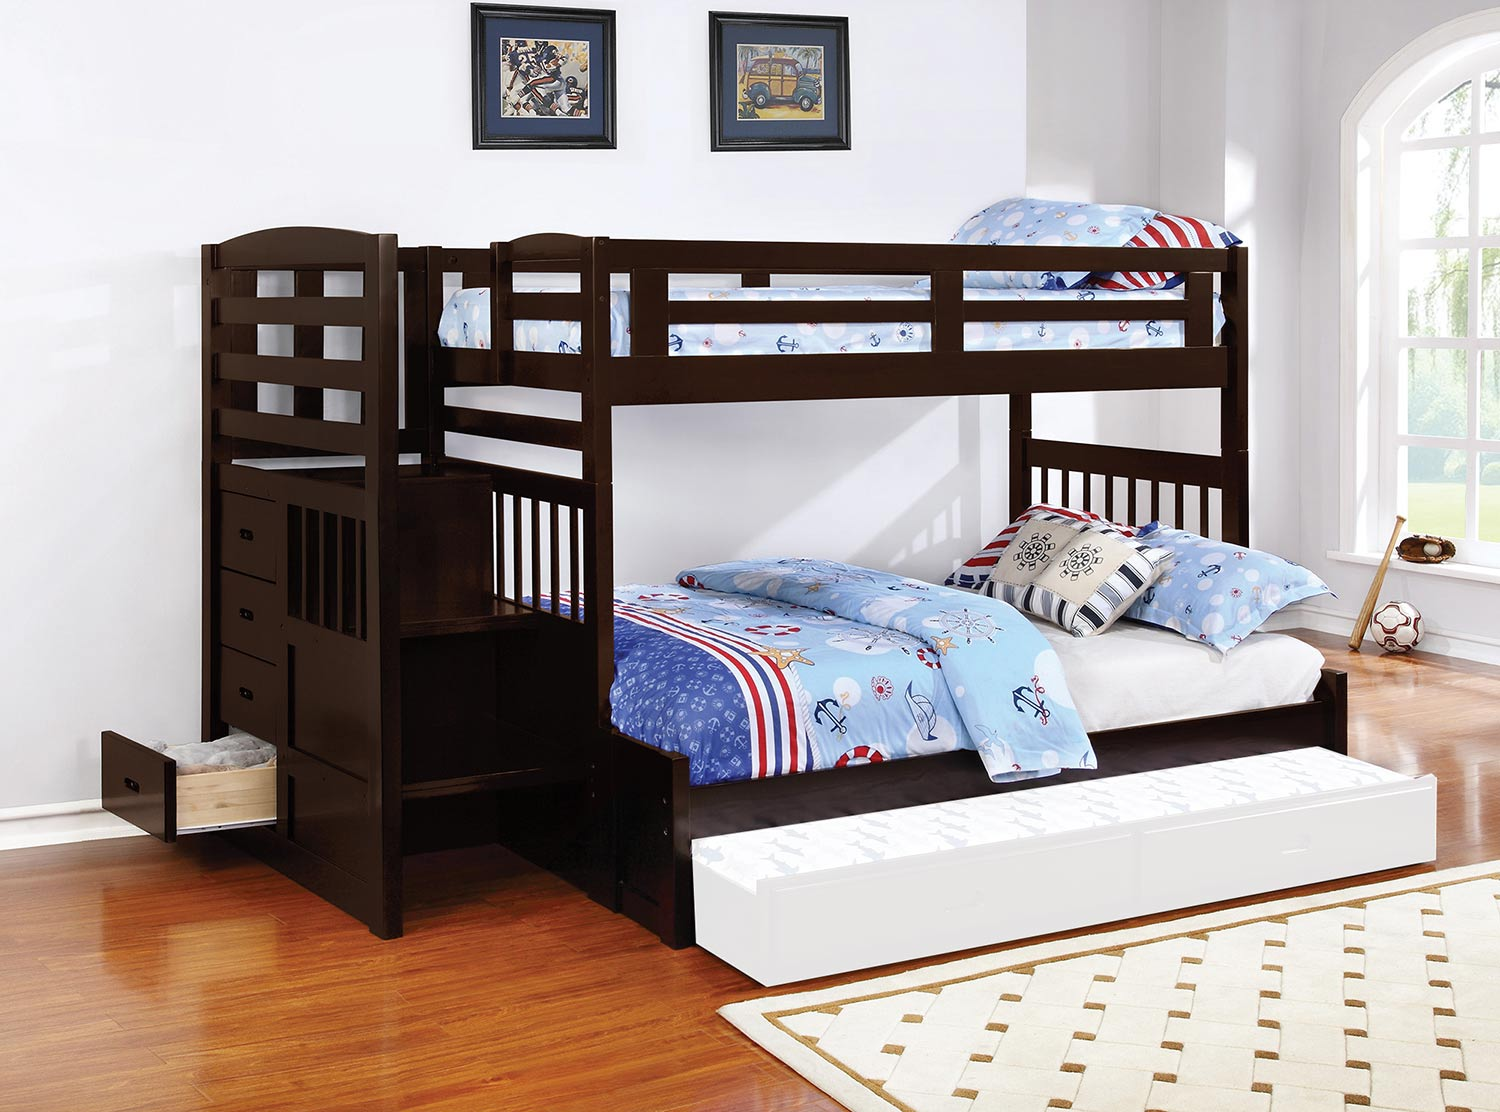 Coaster Dublin Twin/Full Size Bunk Bed - Cappuccino